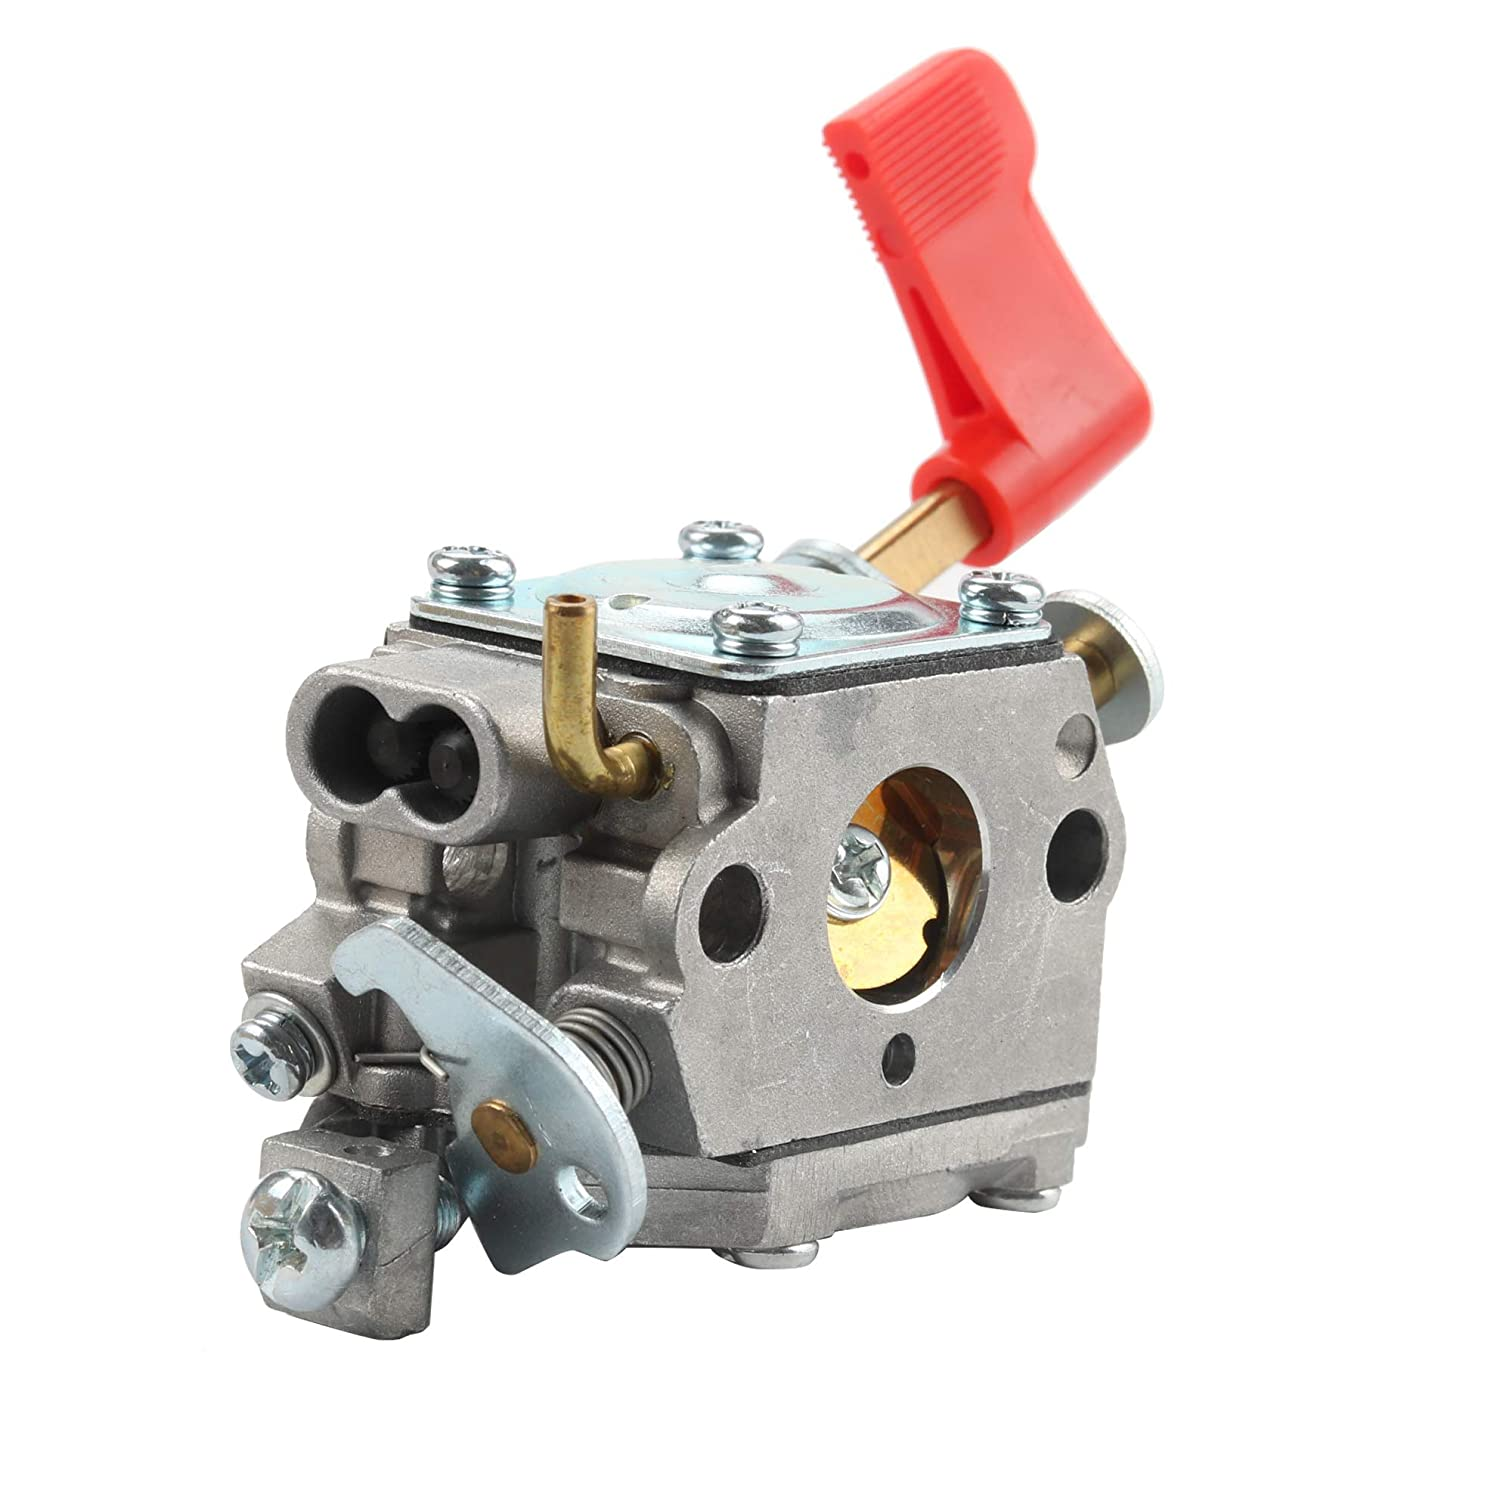 Coolwind C1U-W32 Carburetor with Fuel Line Tune Up Kit for Poulan ...